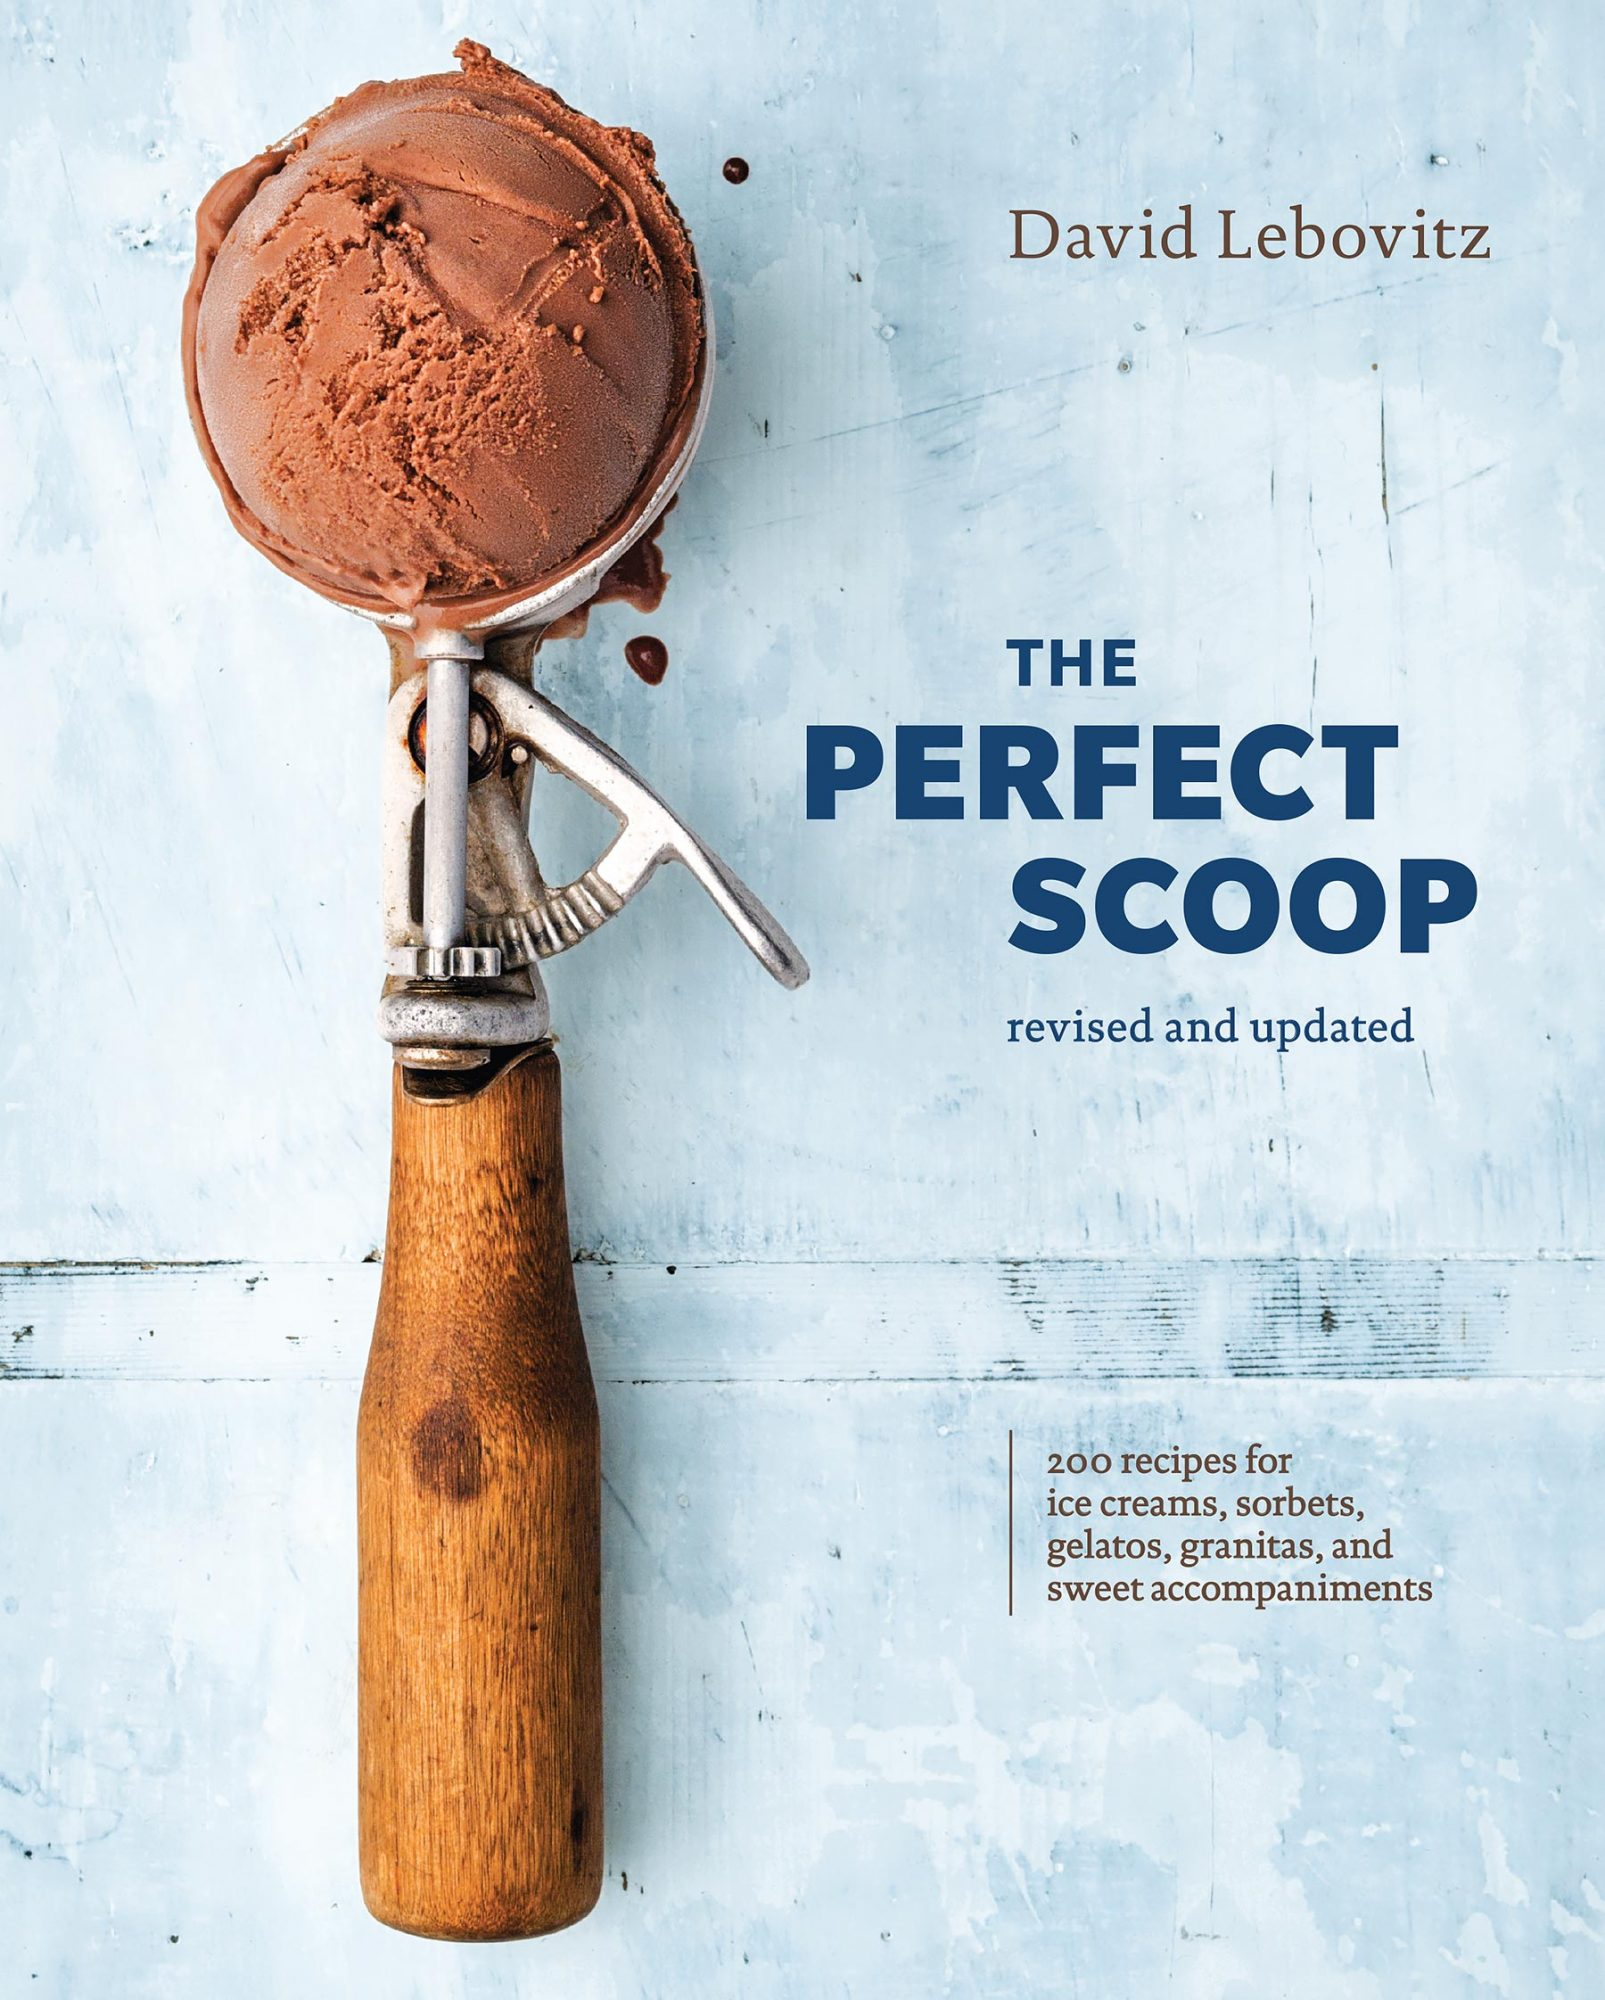 The Perfect Scoop: Revised and Updated, by David Lebovitz